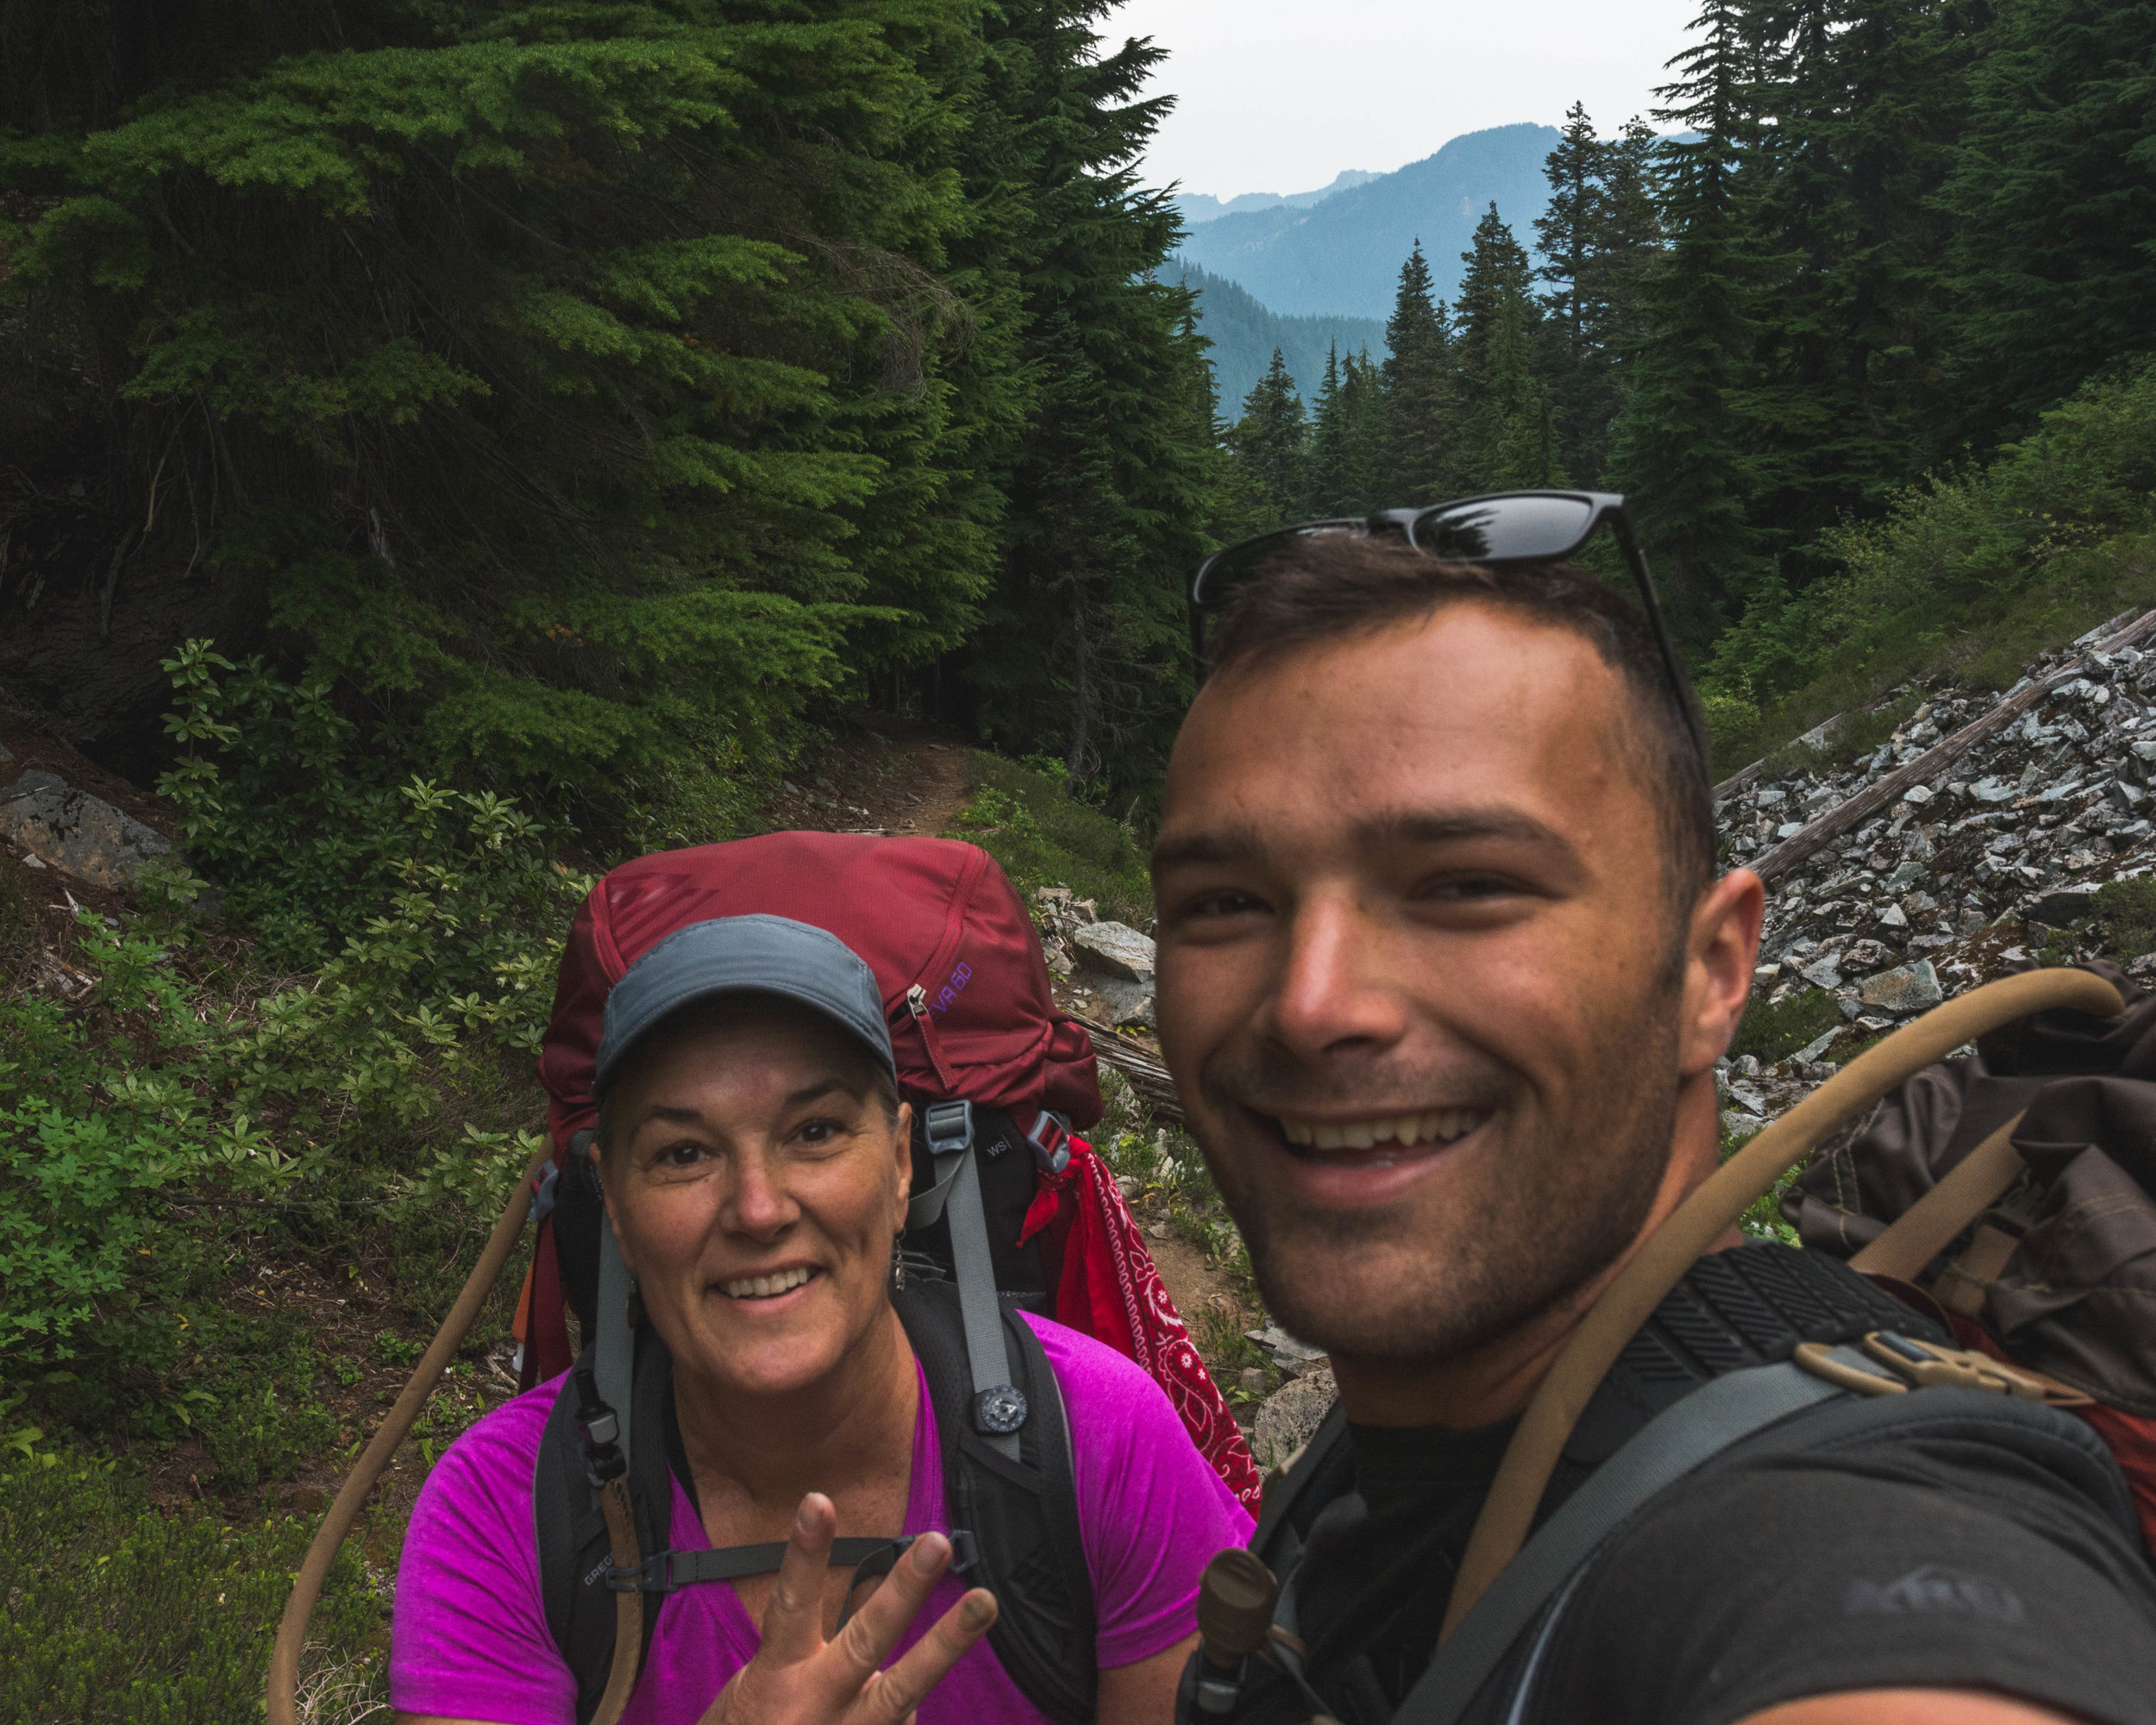 31JUL18 - Cataract Valley to S. Mowich River